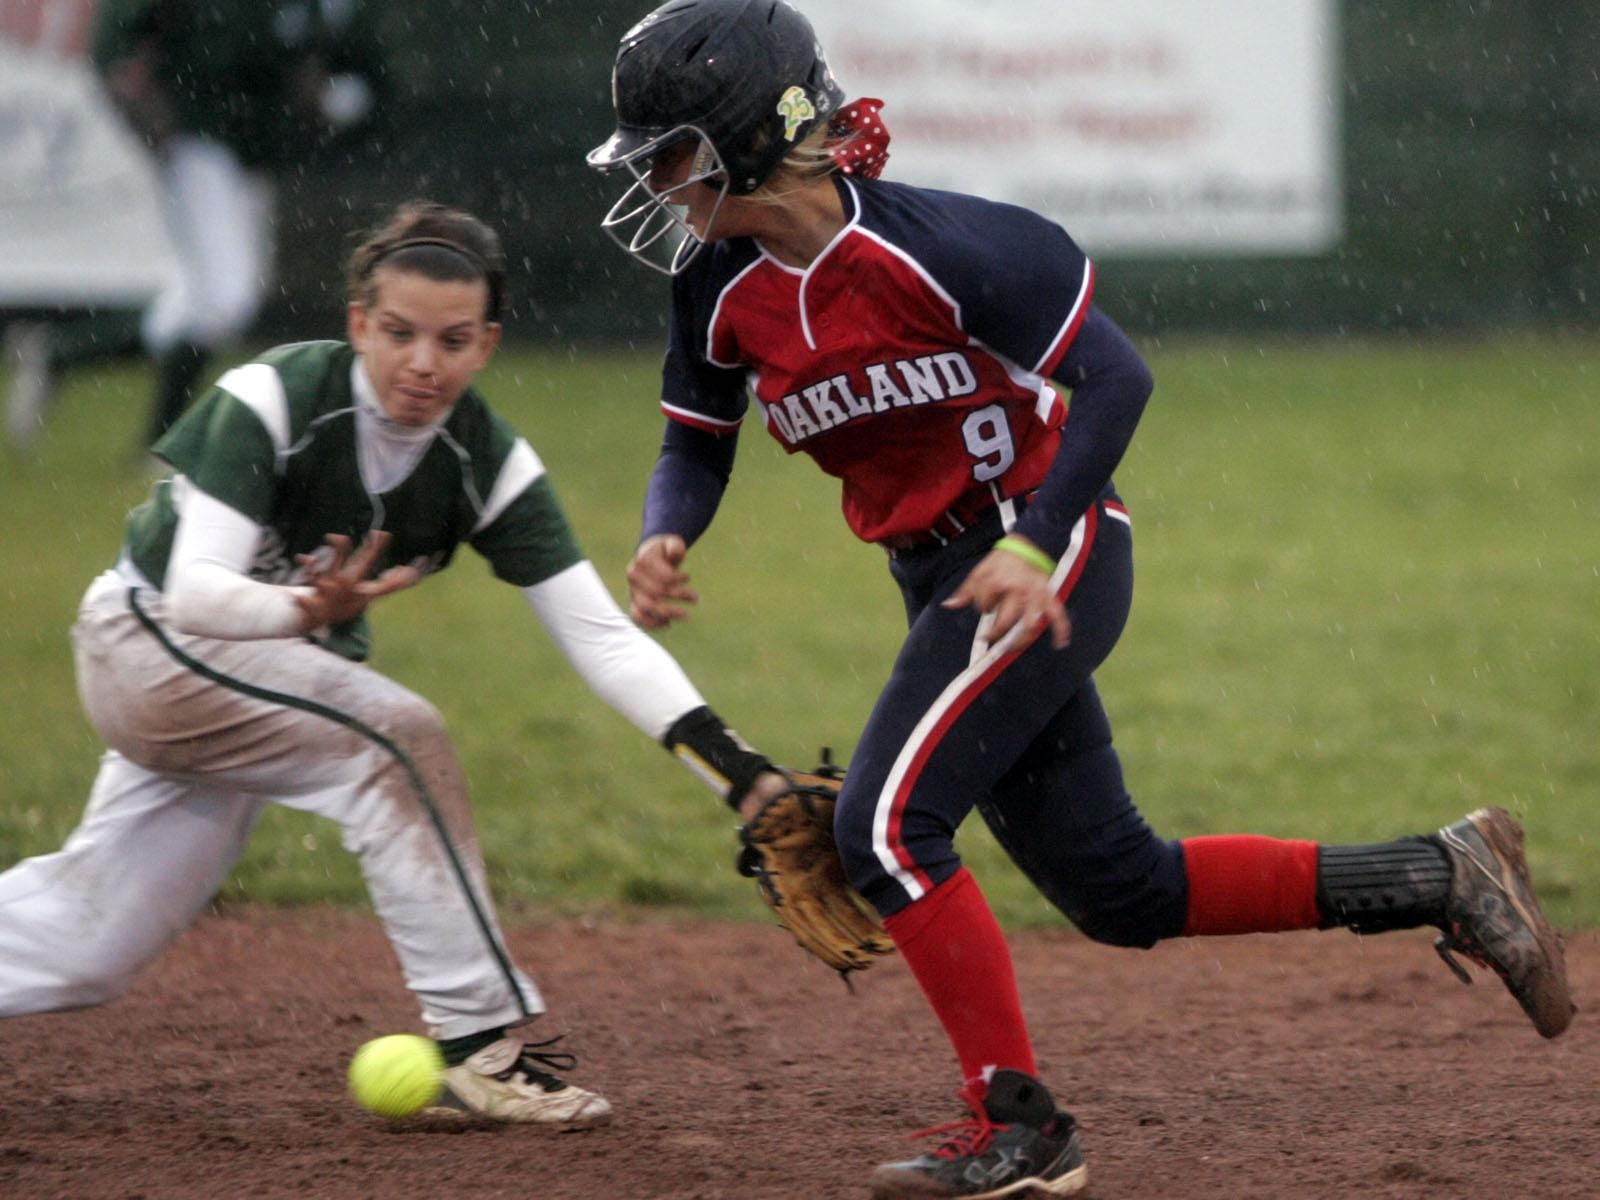 Oaklands Hannah McCravy Will Play In The MTSCA All Star Softball Game At Volunteer State